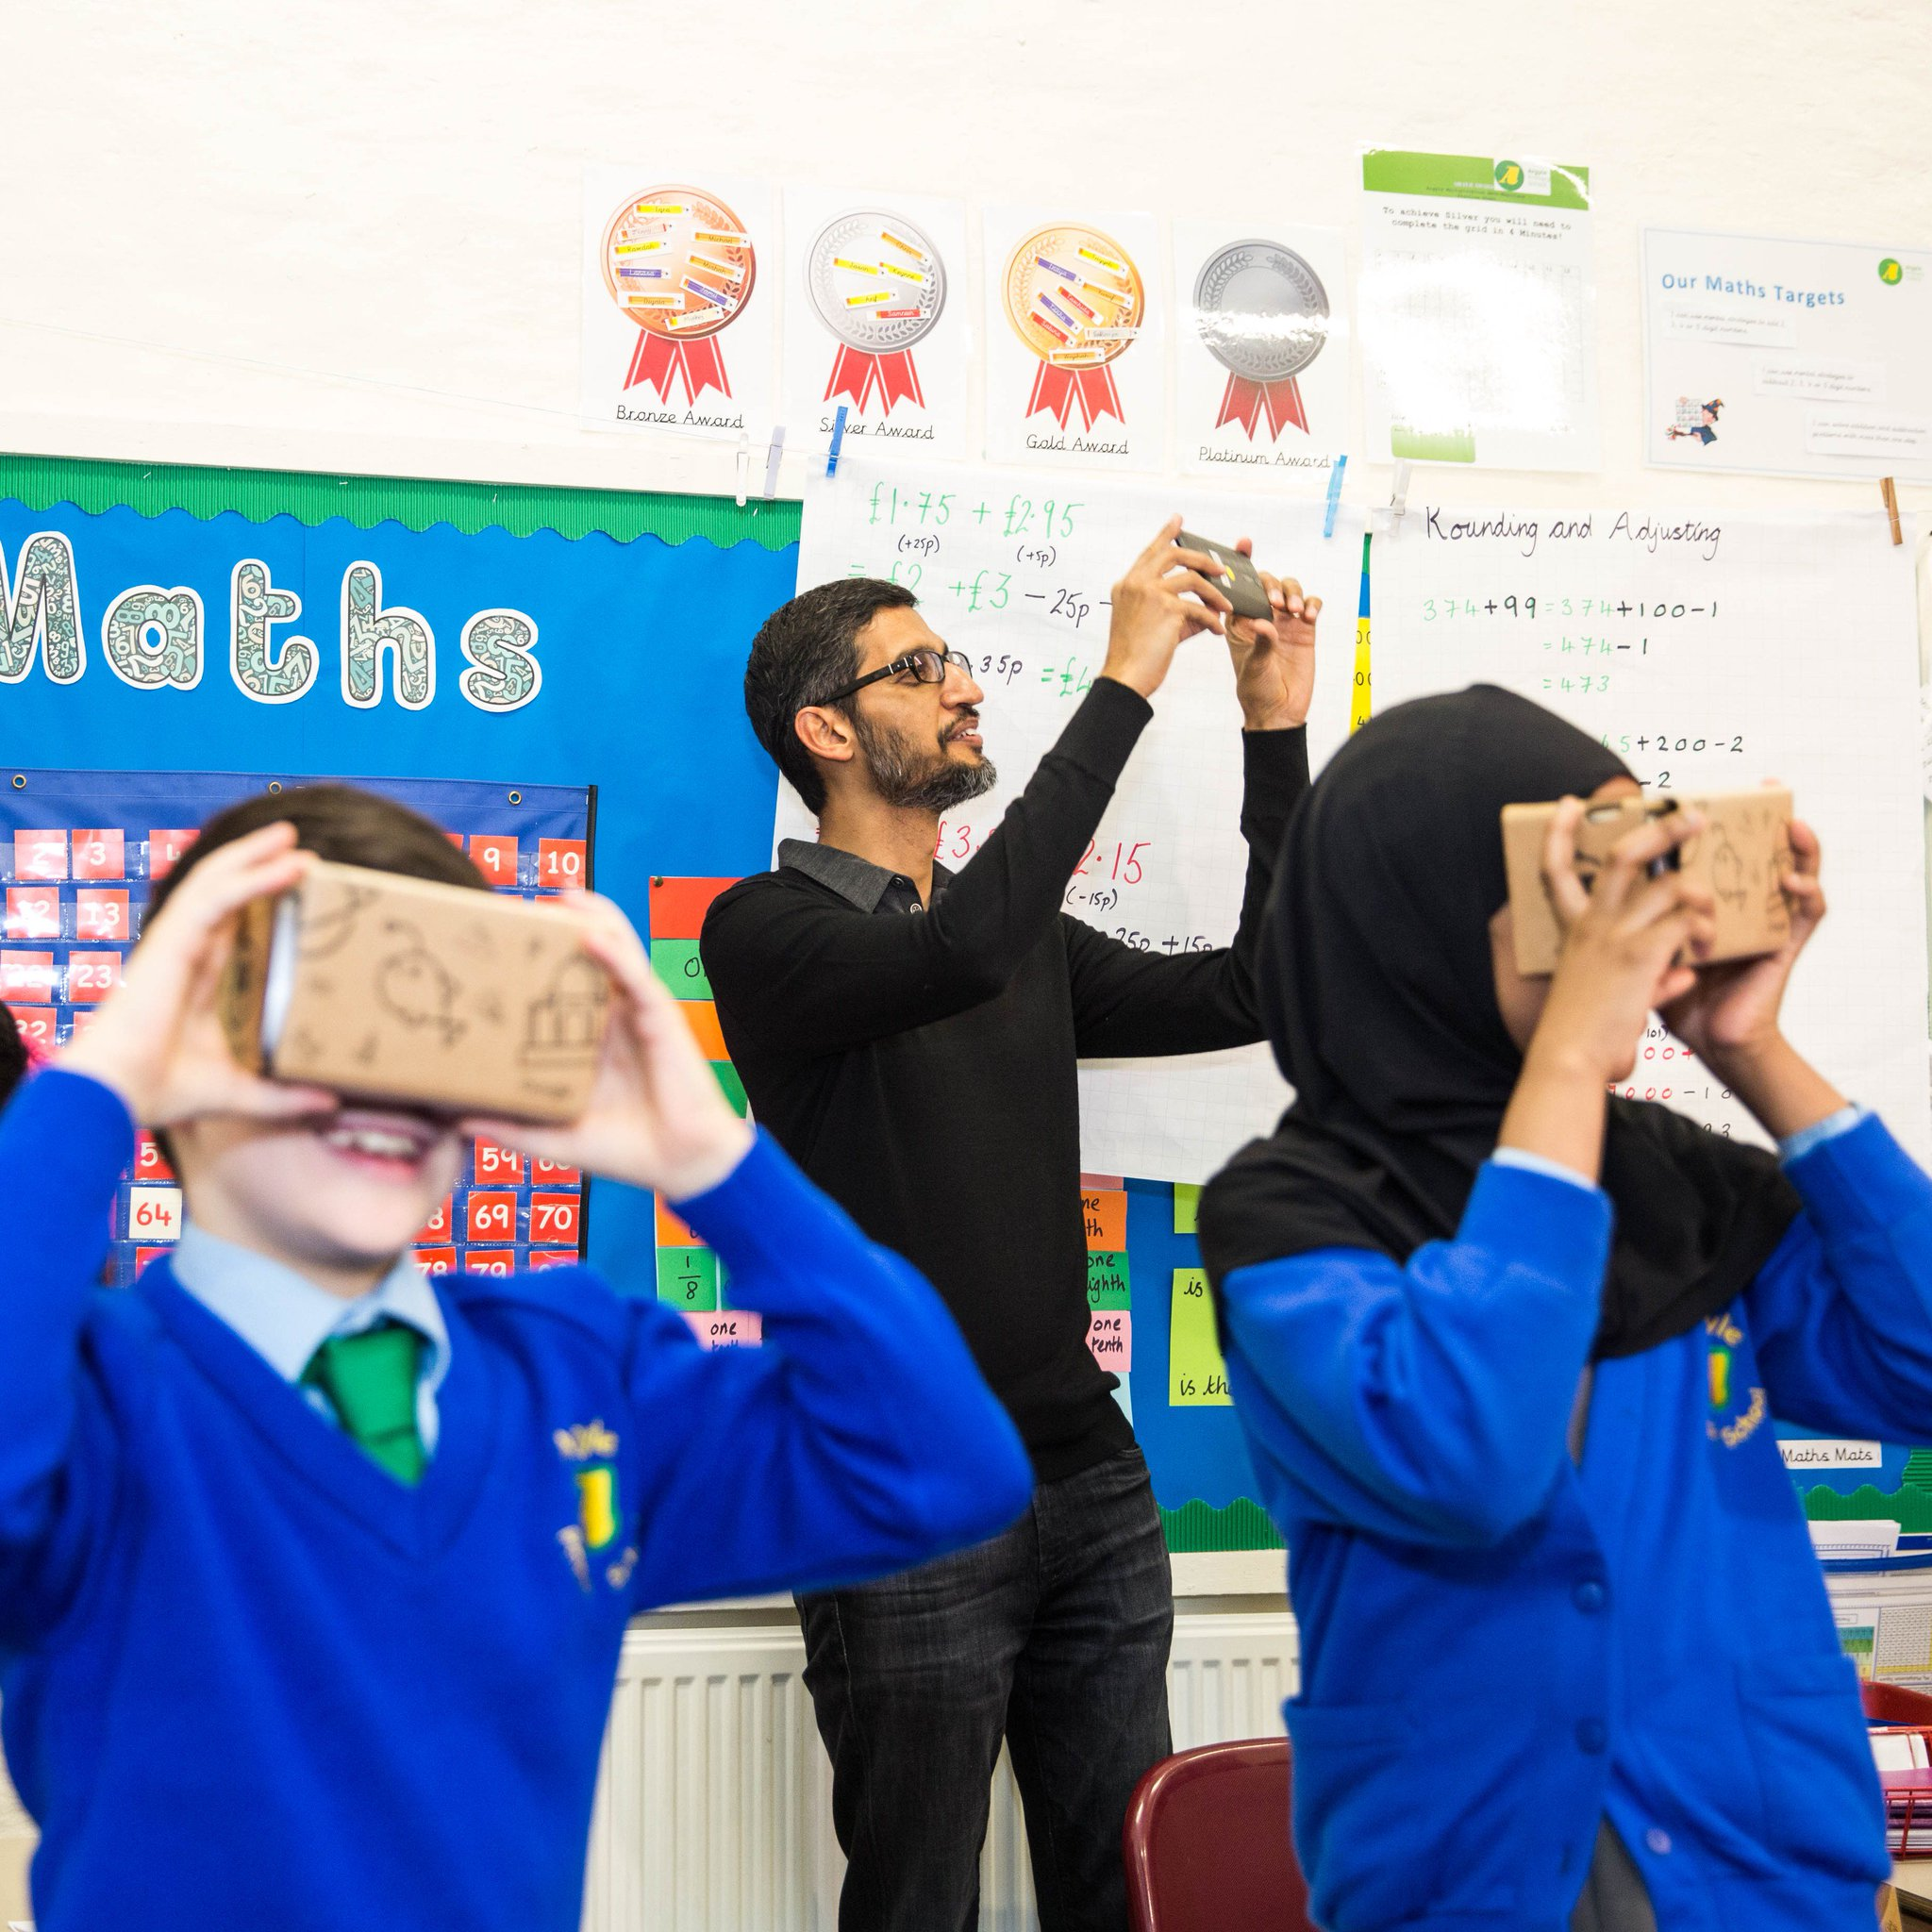 Virtual reality can spark students' imagination and help them learn about topics in an engaging and immersive way. Sundar Pichai CEO, Google